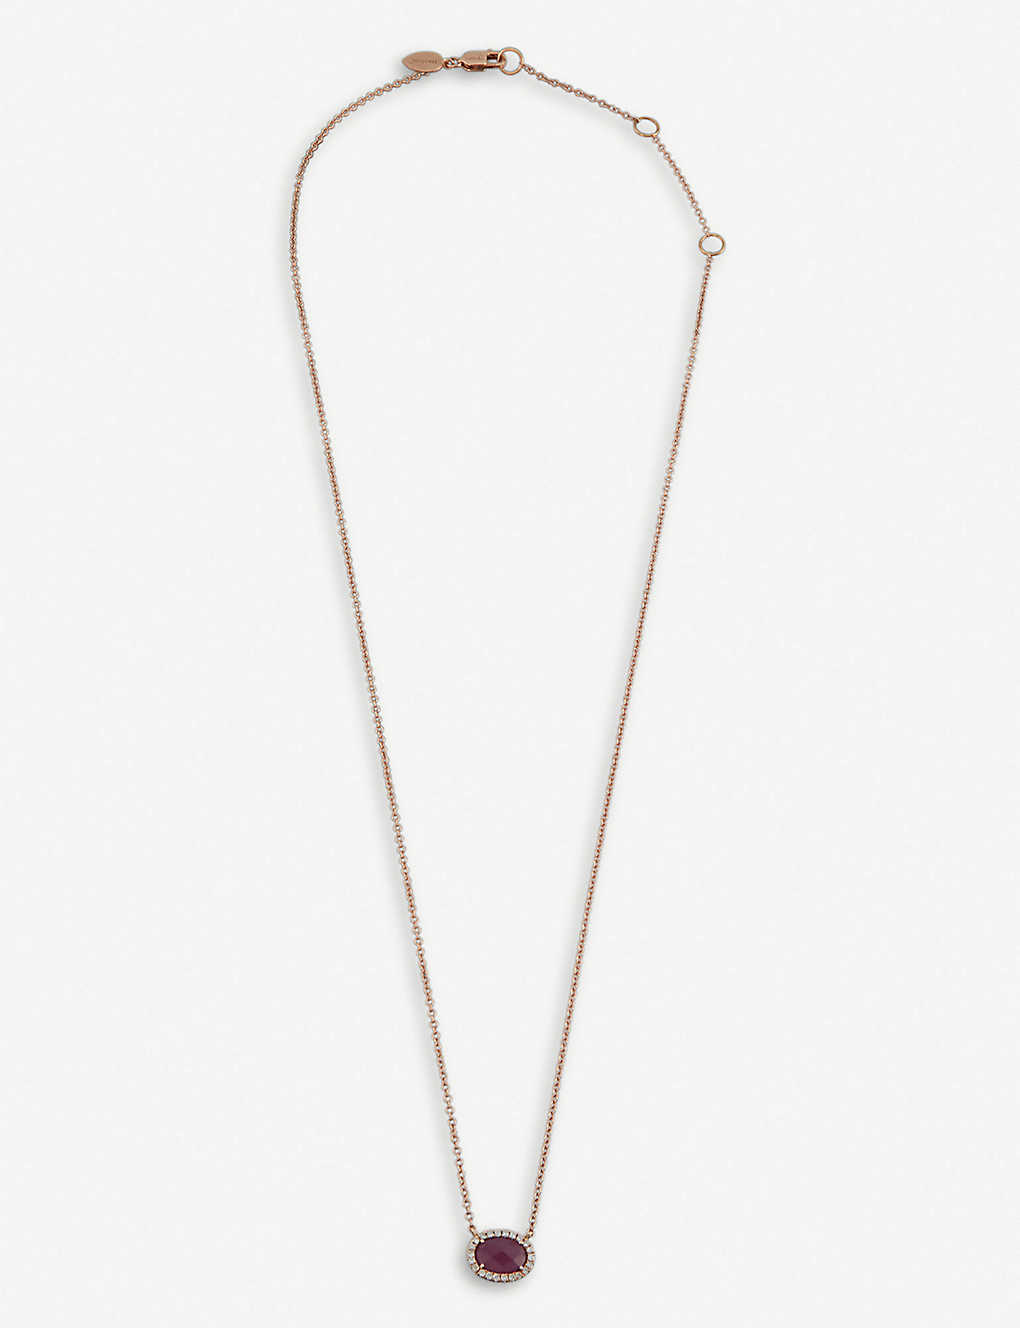 f1315aa28a456 THE ALKEMISTRY - Meira T 14ct rose gold, ruby and diamond necklace ...